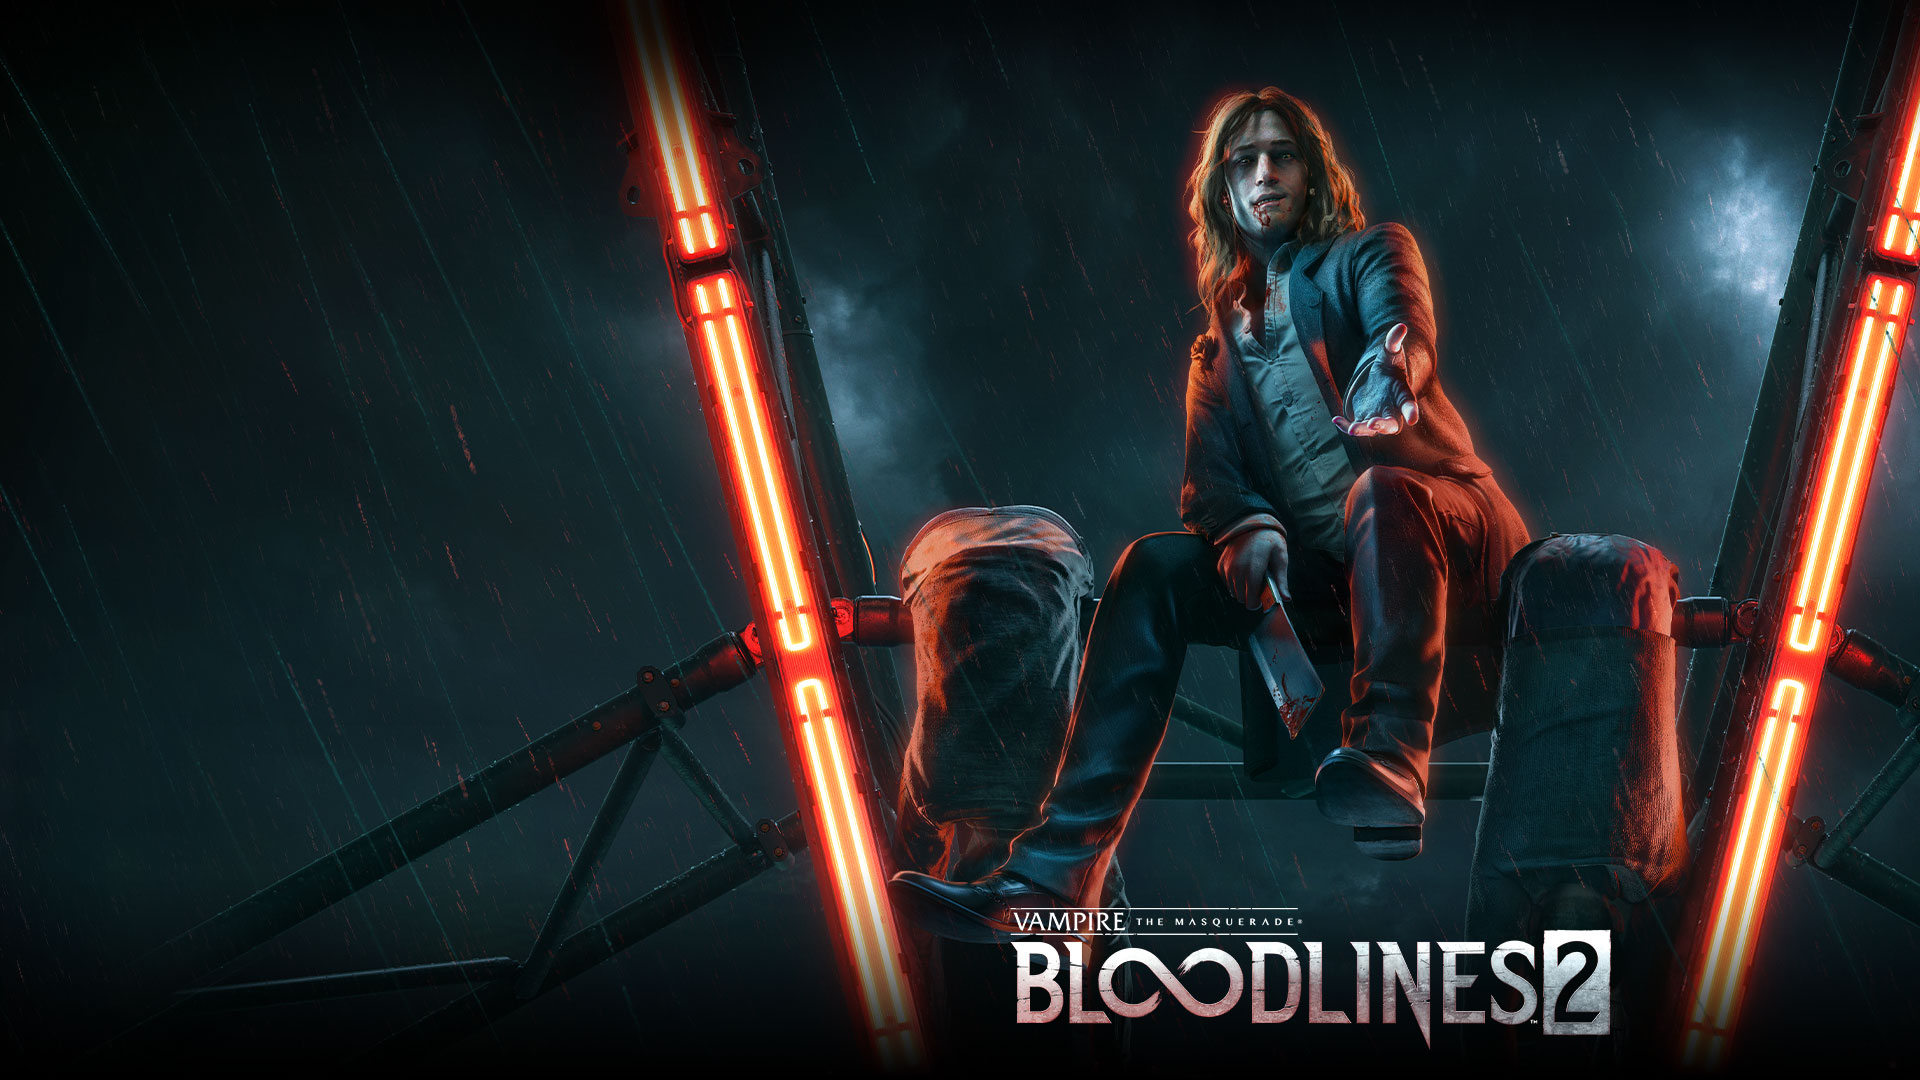 Vampire the Masquerade Bloodlines 2, A vampire smiles while resting on the spokes of a ferris wheel.